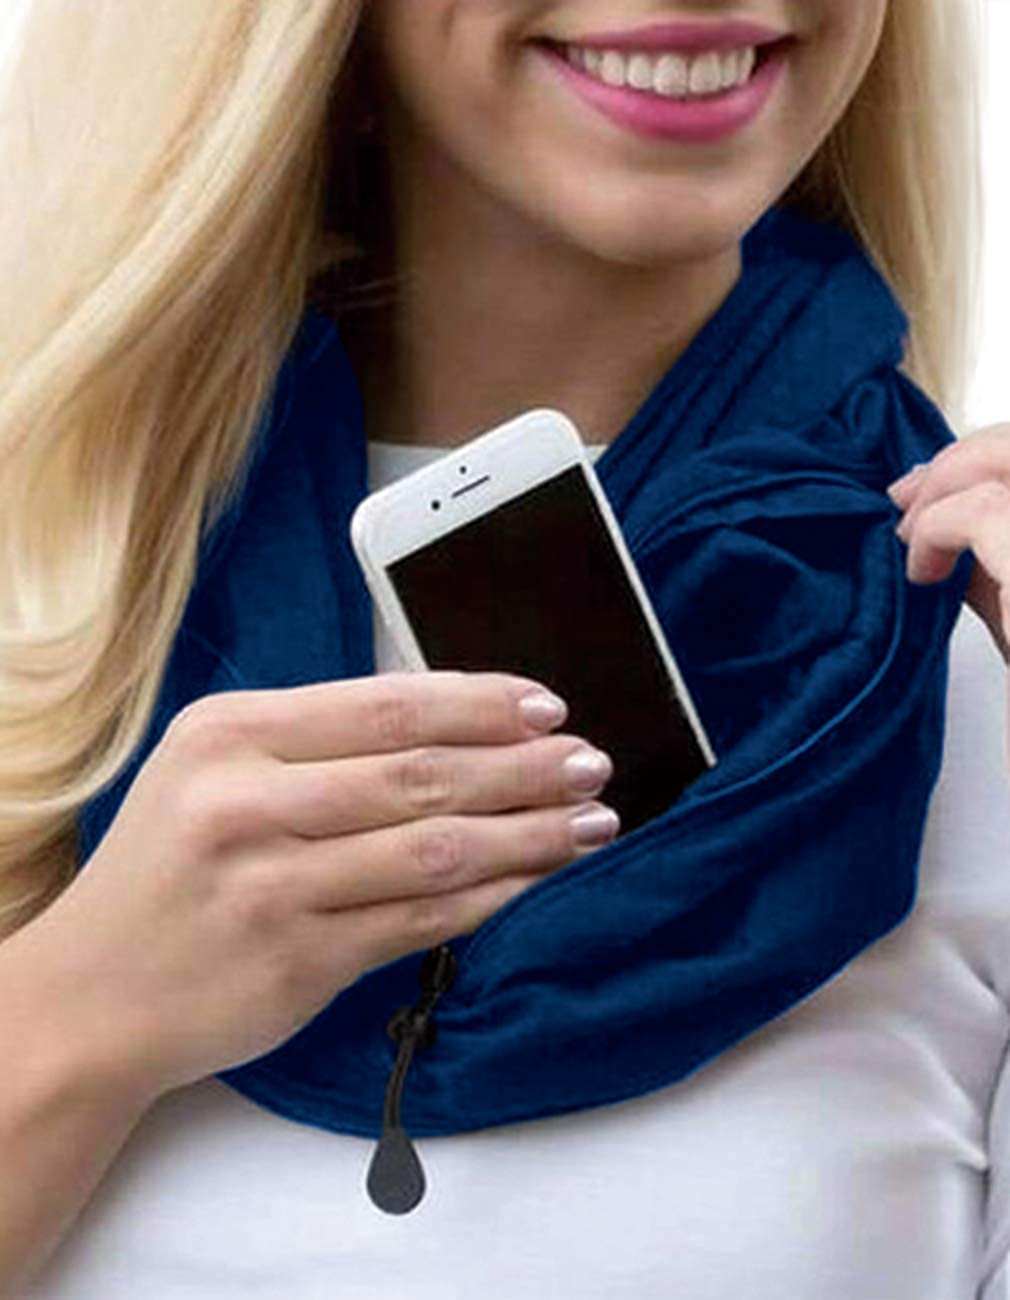 Convertible Infinty Scarf With Pocket Womens Fall Warm Loop Scarf Lightweight Travel Scarf